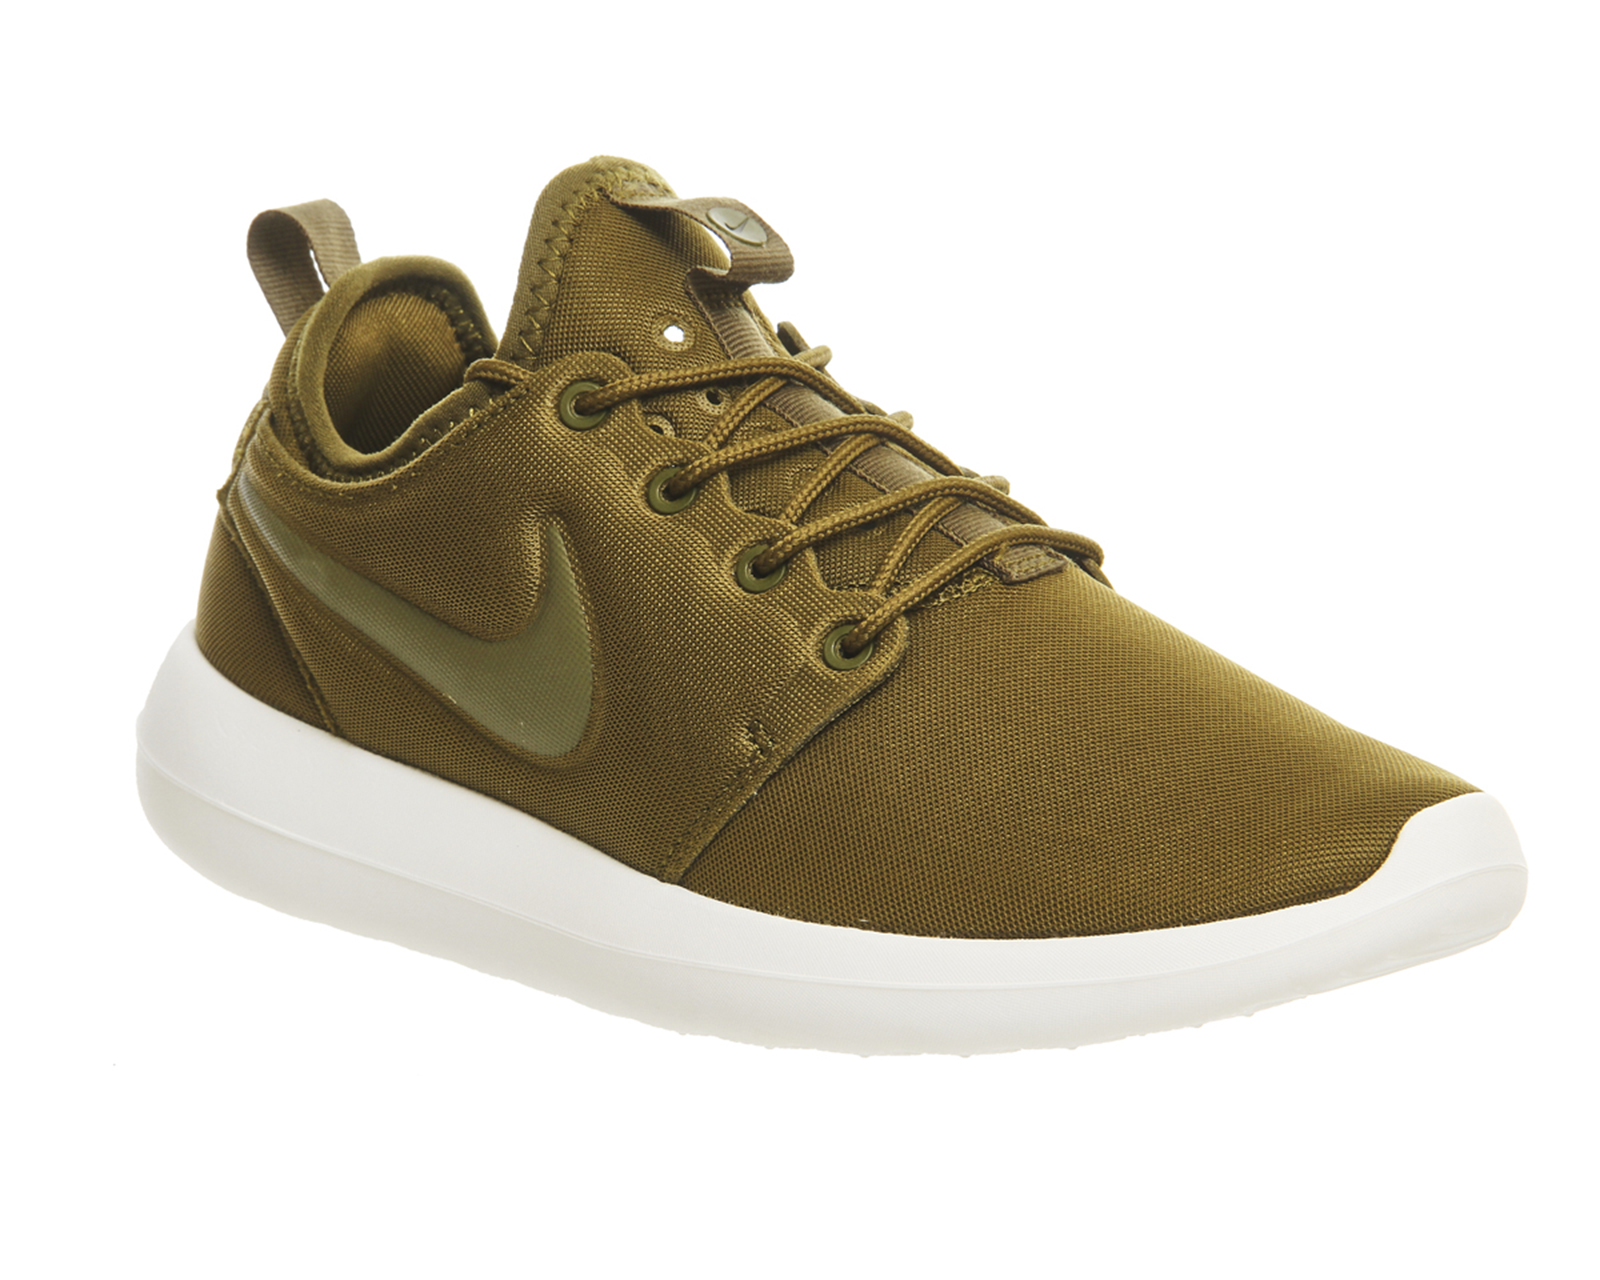 4dafb4eacc Double tap to zoom into the image. Nike, Roshe Two W, Olive Flak ...